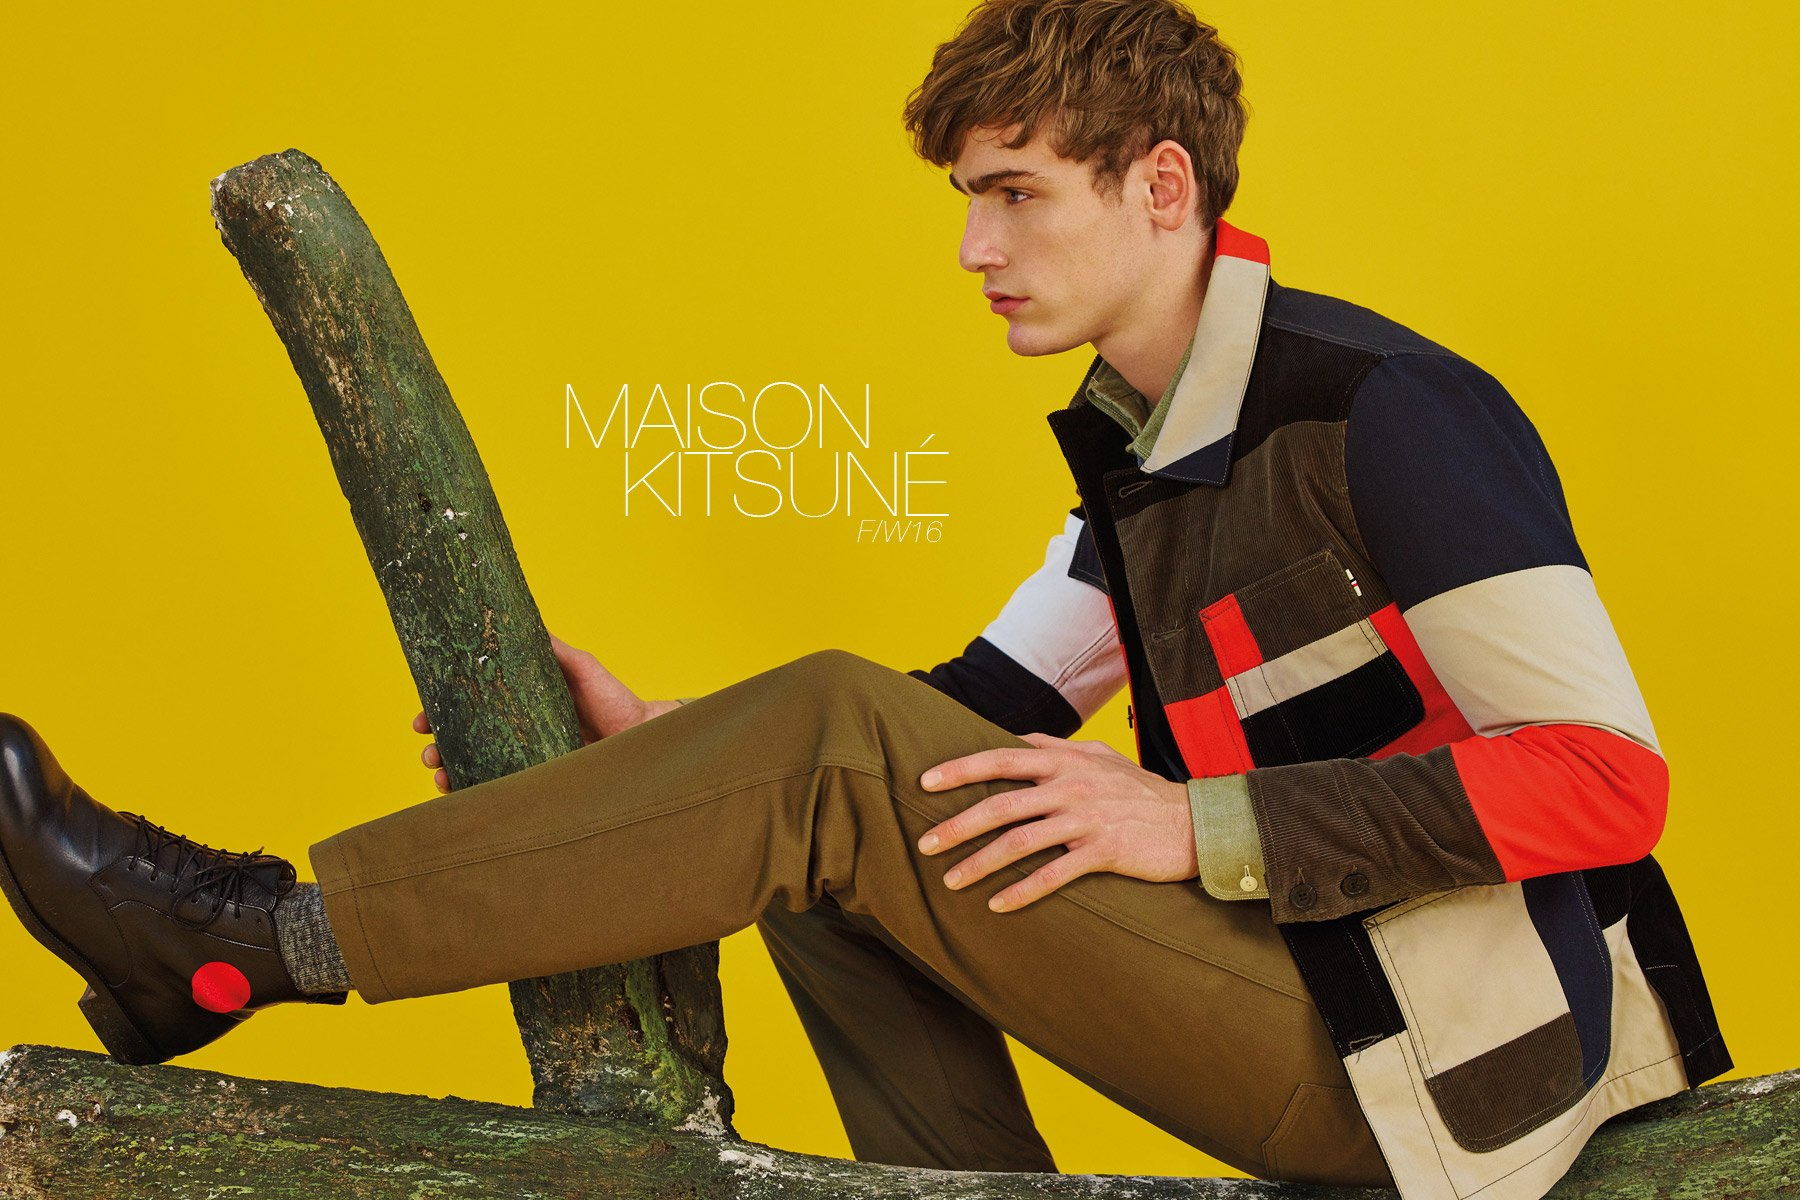 The latest Maison Kitsuné menswear lookbook, for Fall/Winter 2016, by photographer Pierpaolo Ferrari. Pony boy magazine NY.